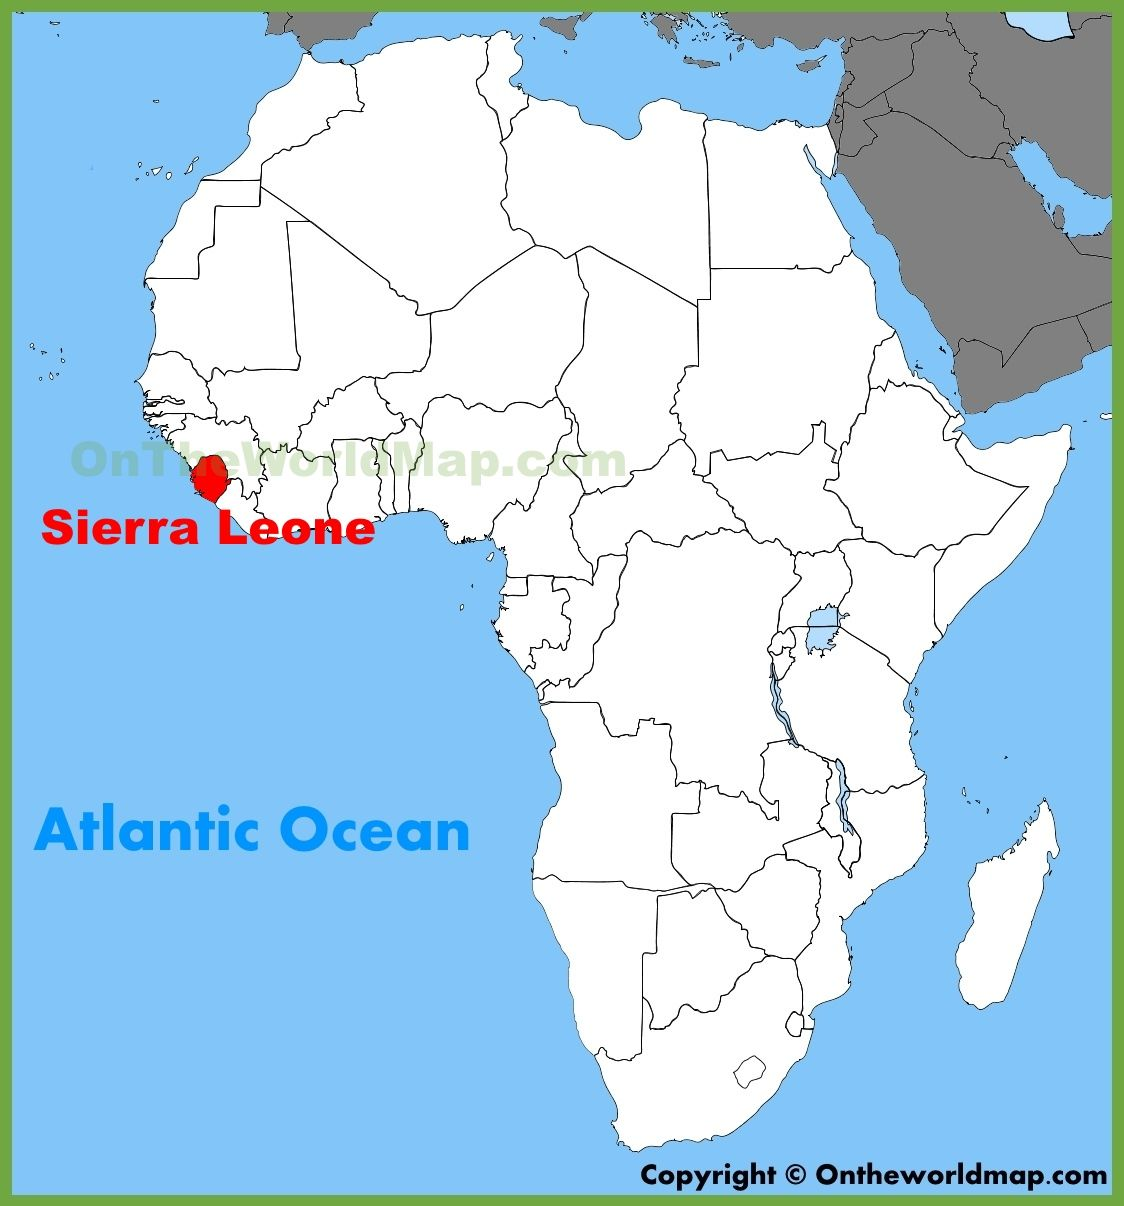 Sierra Leone Map Africa Sierra Leone location on the Africa map | Africa map, African map, Map